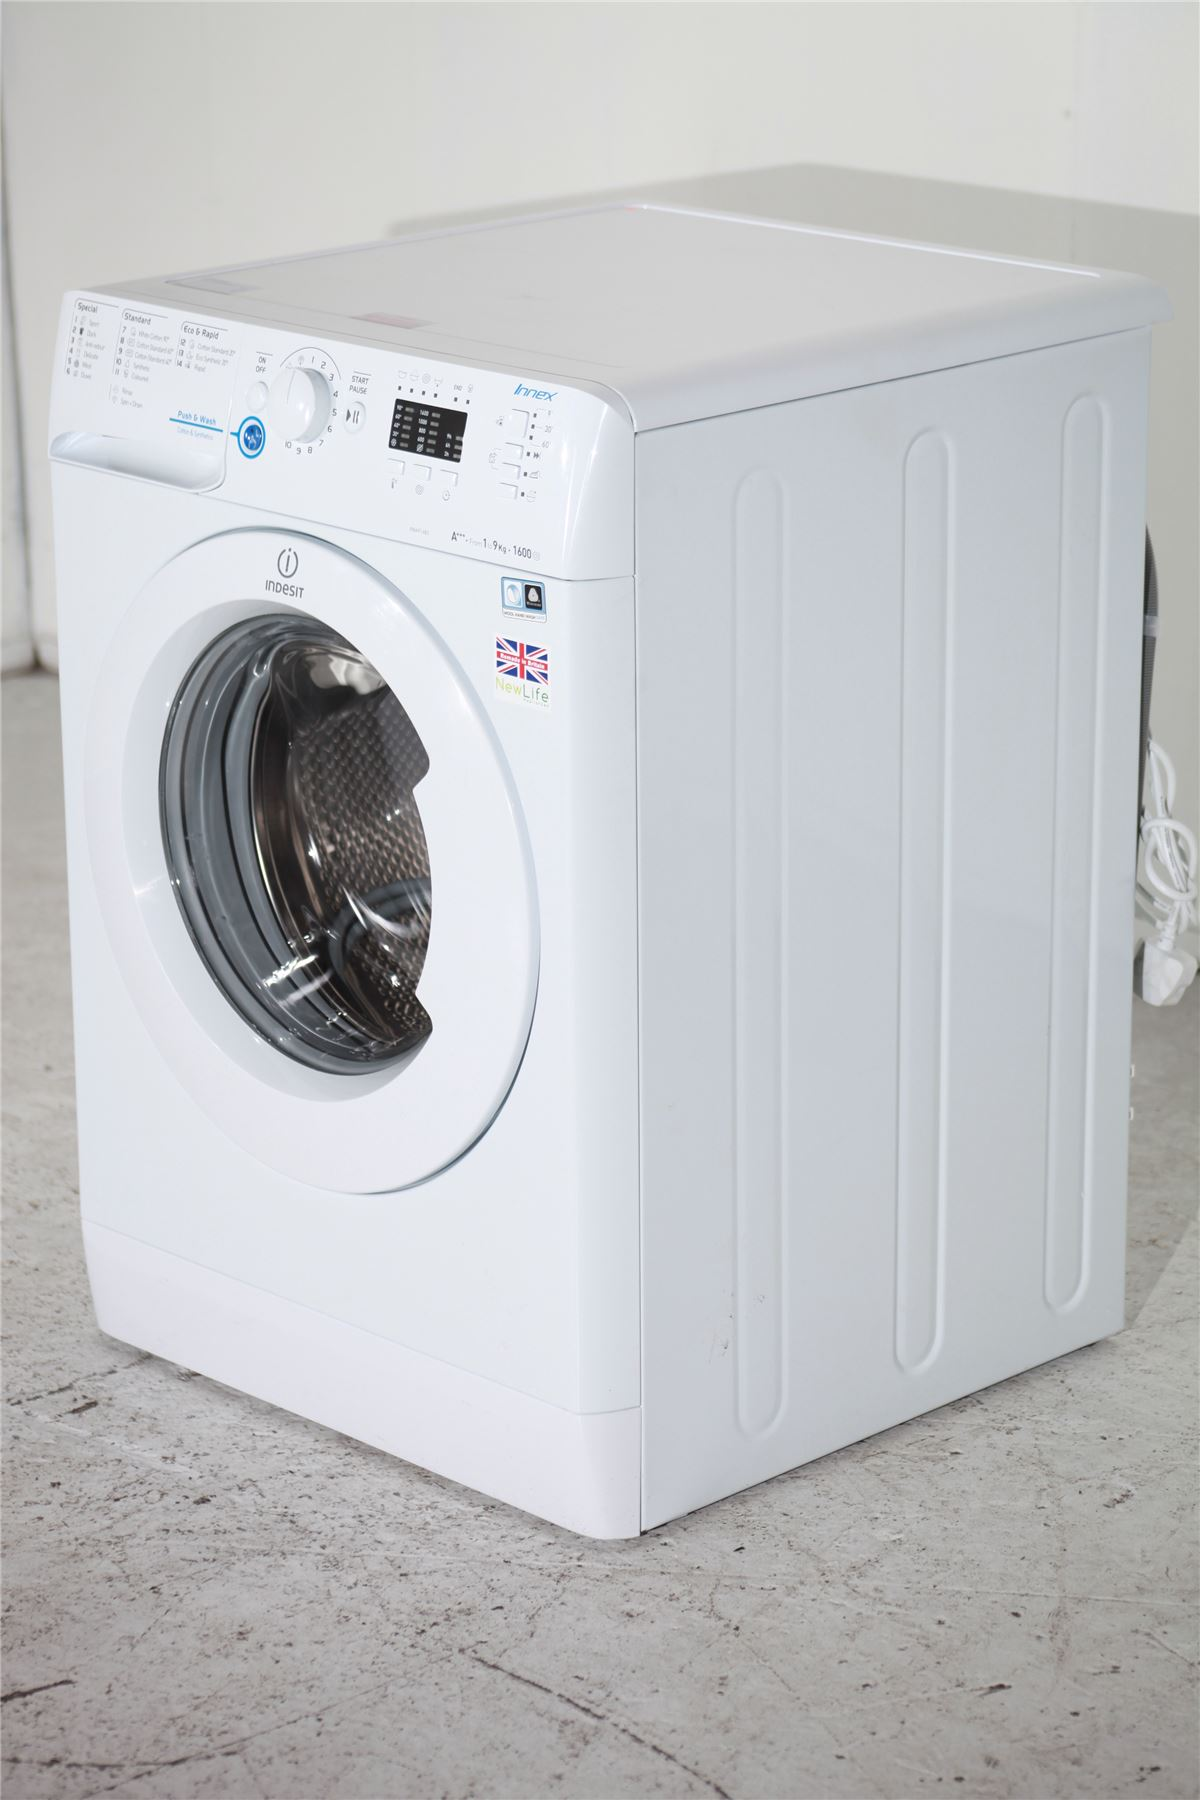 preloved indesit 9kg washing machine 1600 spin xwa91683xw white for sale in mile end london. Black Bedroom Furniture Sets. Home Design Ideas